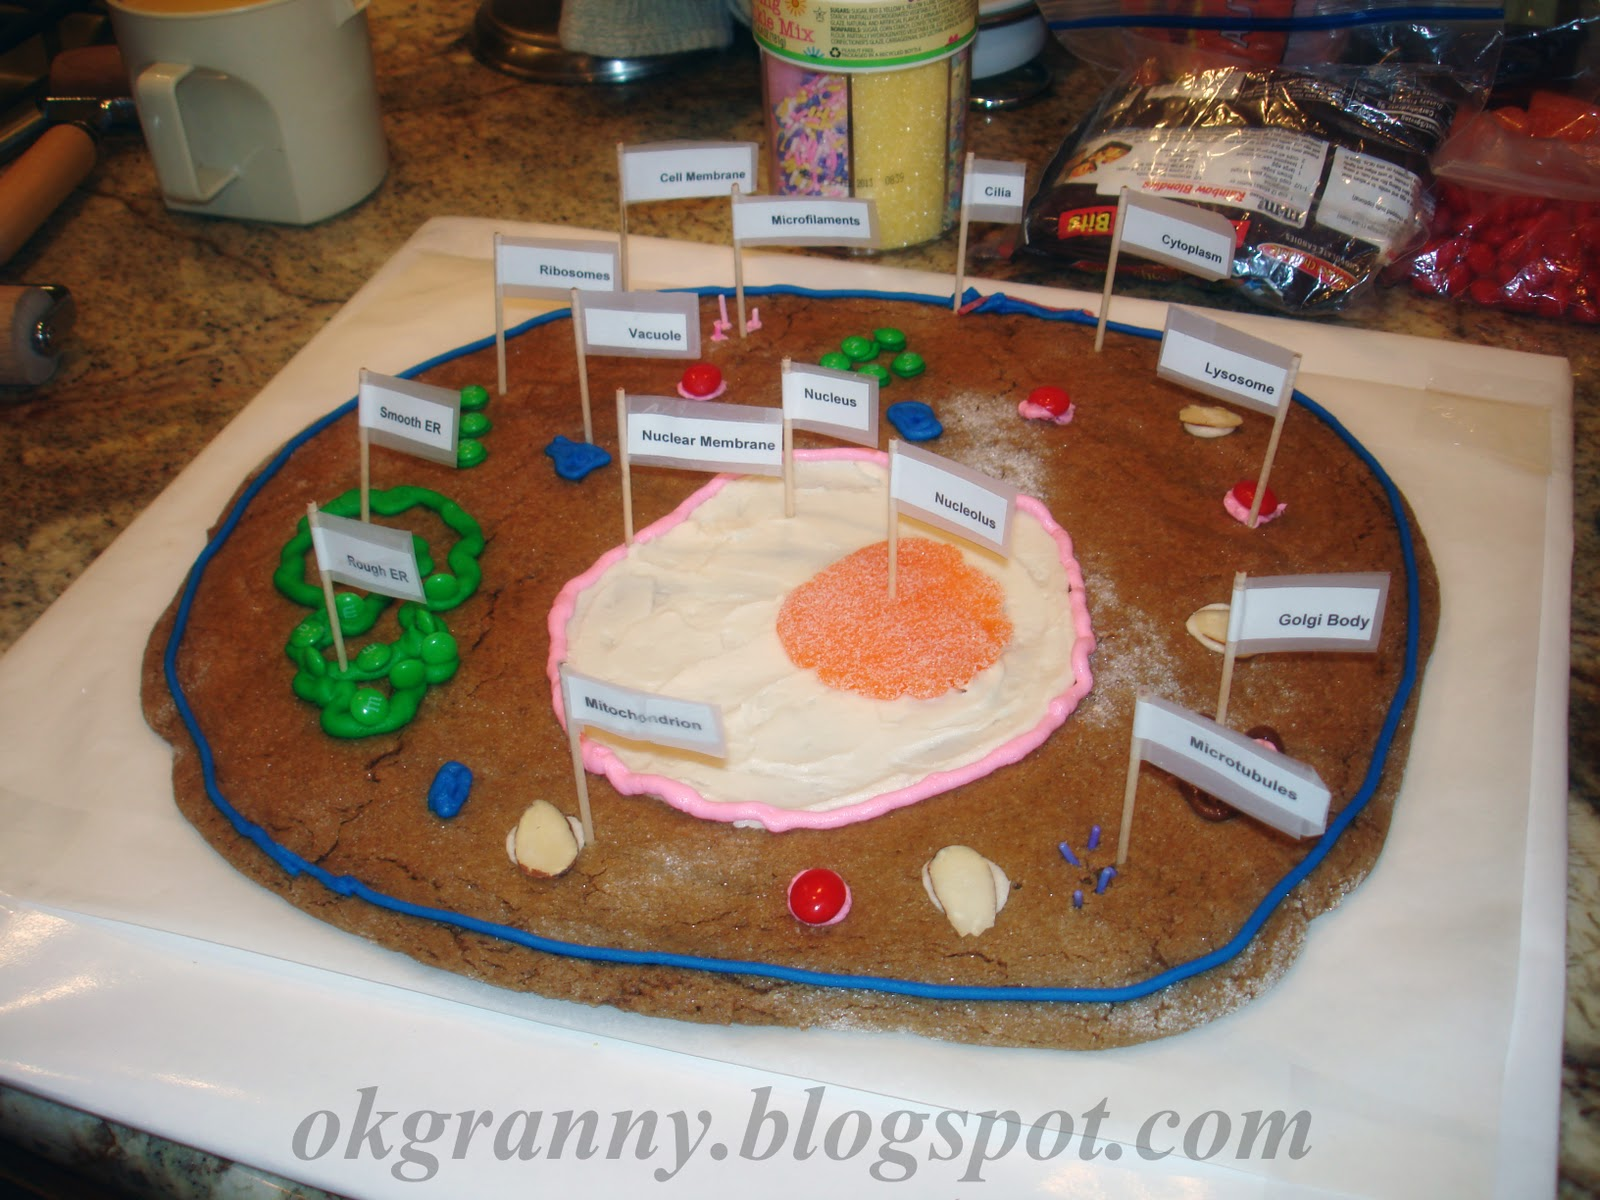 Sample of Plant Cell Projects http://www.sylwiagrzeszczak.com/edible-plant-cell-model-ideas